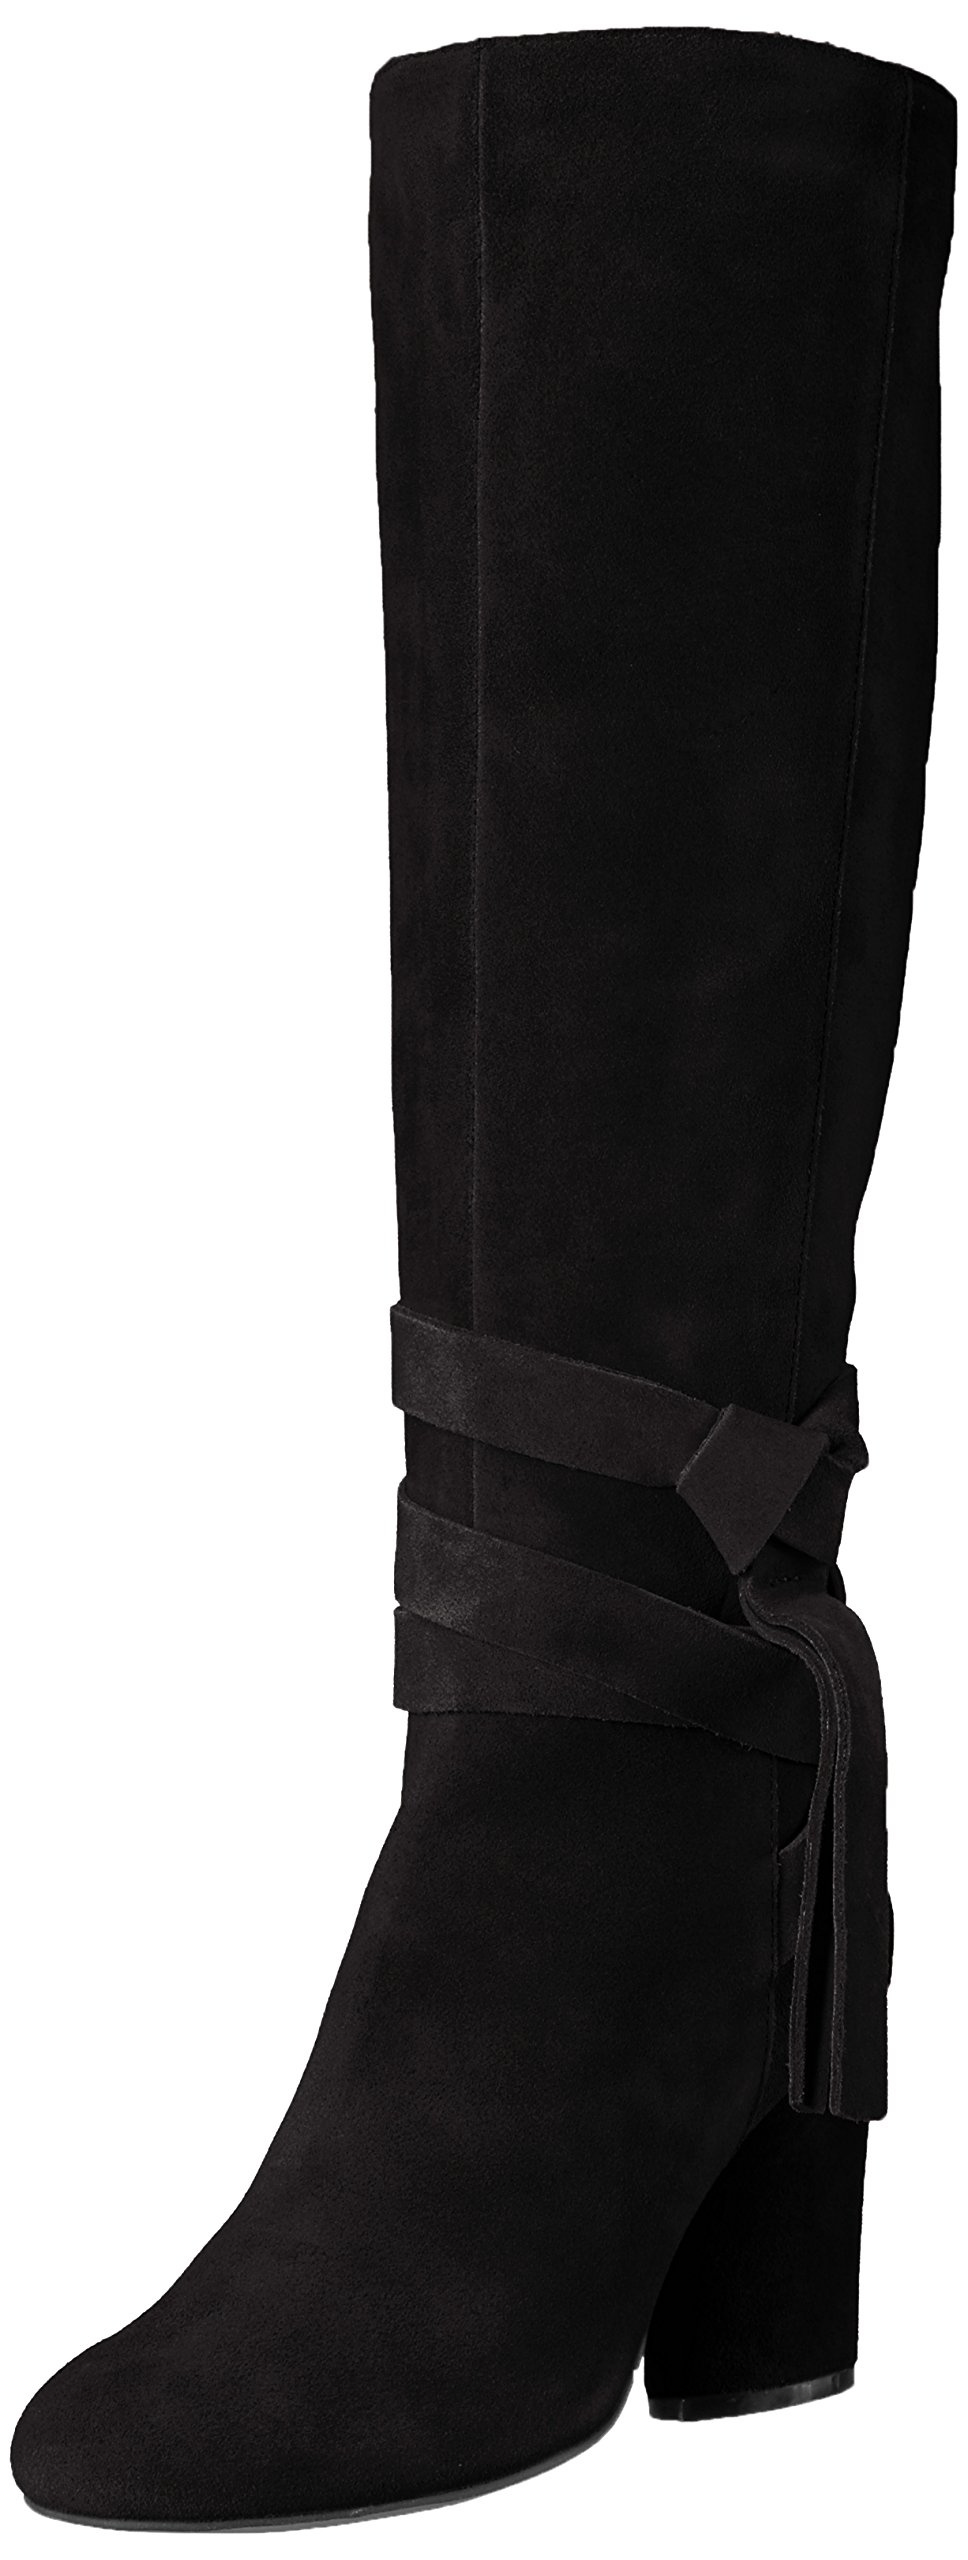 The Fix Women's Nia Knee-High Ankle Tie Boot, Black, 6.5 M US